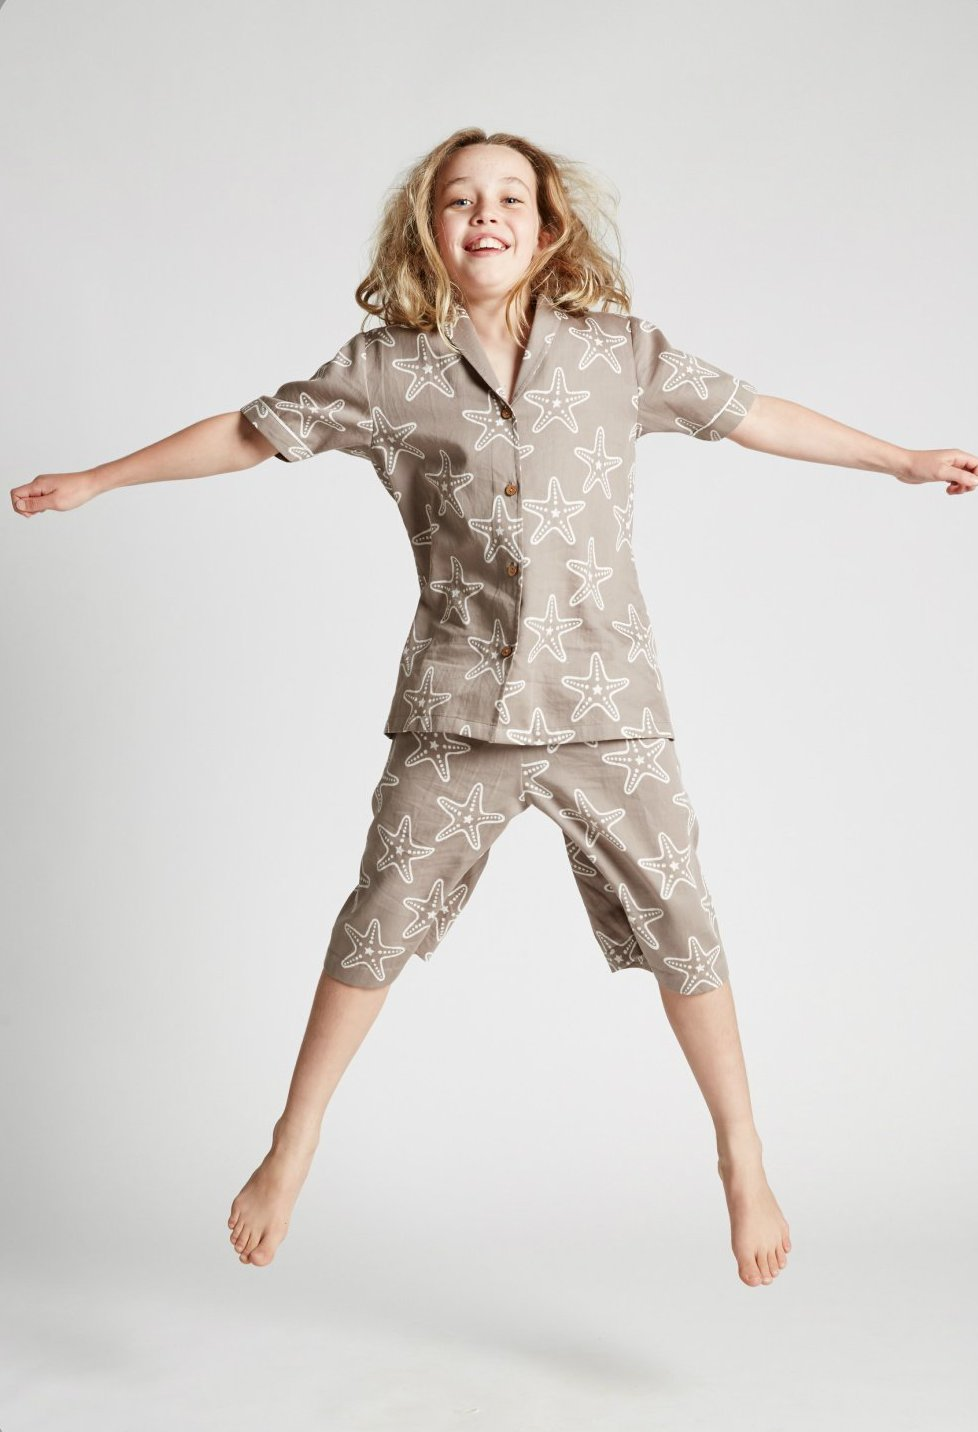 Starfish - Kids Unisex - Classic Top and Shorts - Fair Trade Sleepwear